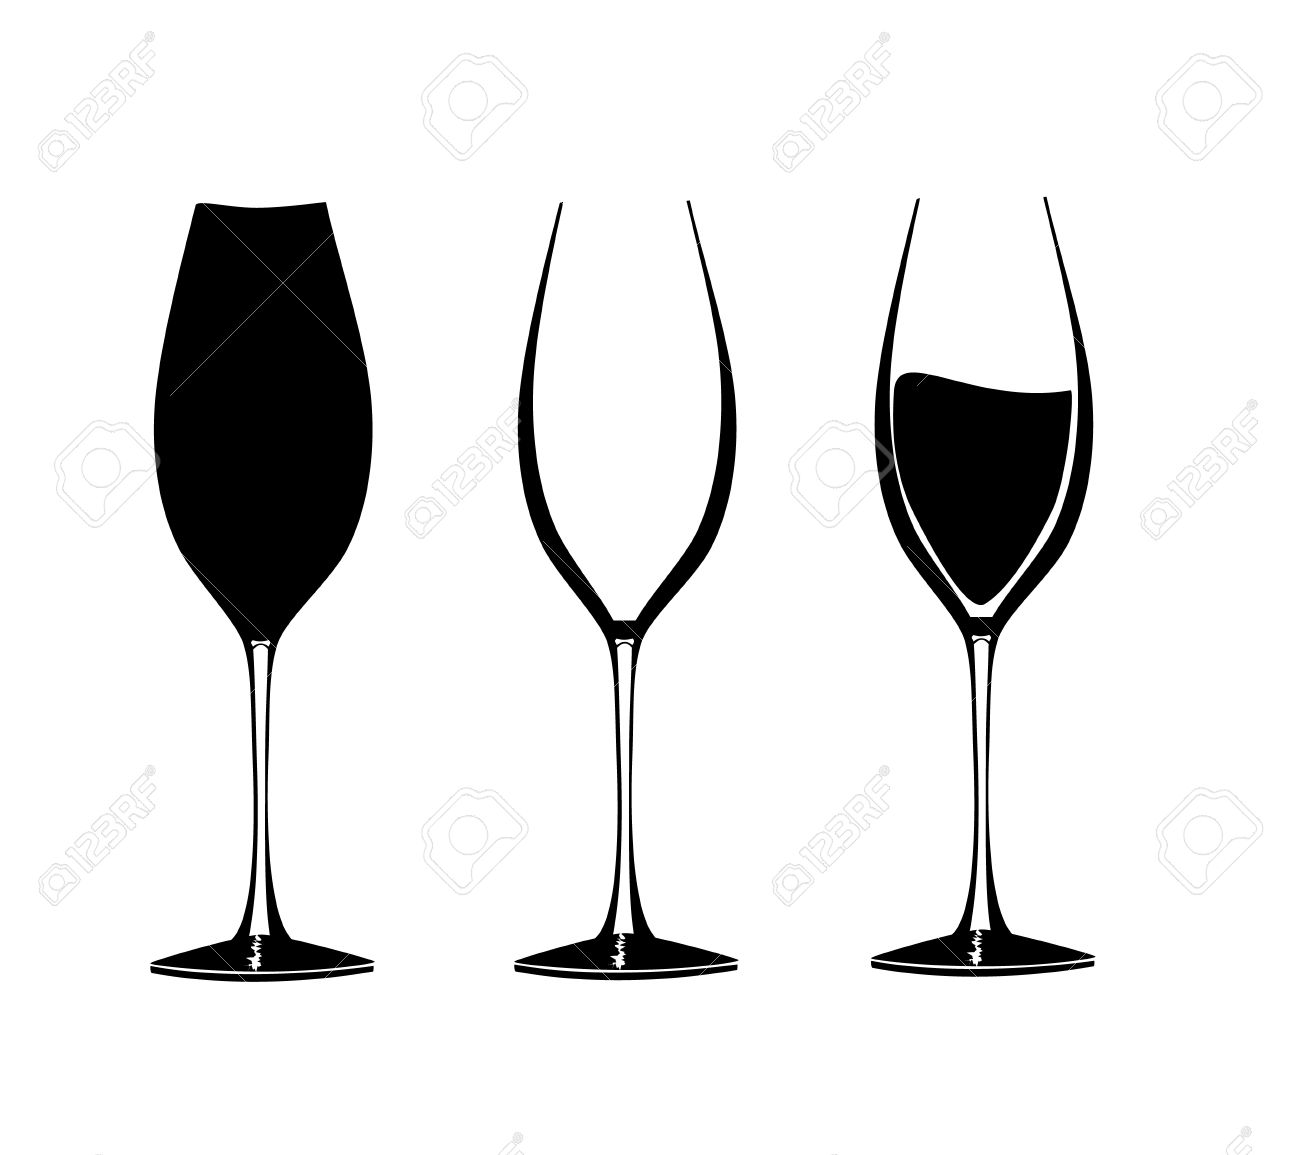 wine glasses in graphic for use in party or restaurant artwork rh 123rf com wine vector free download wine vector art